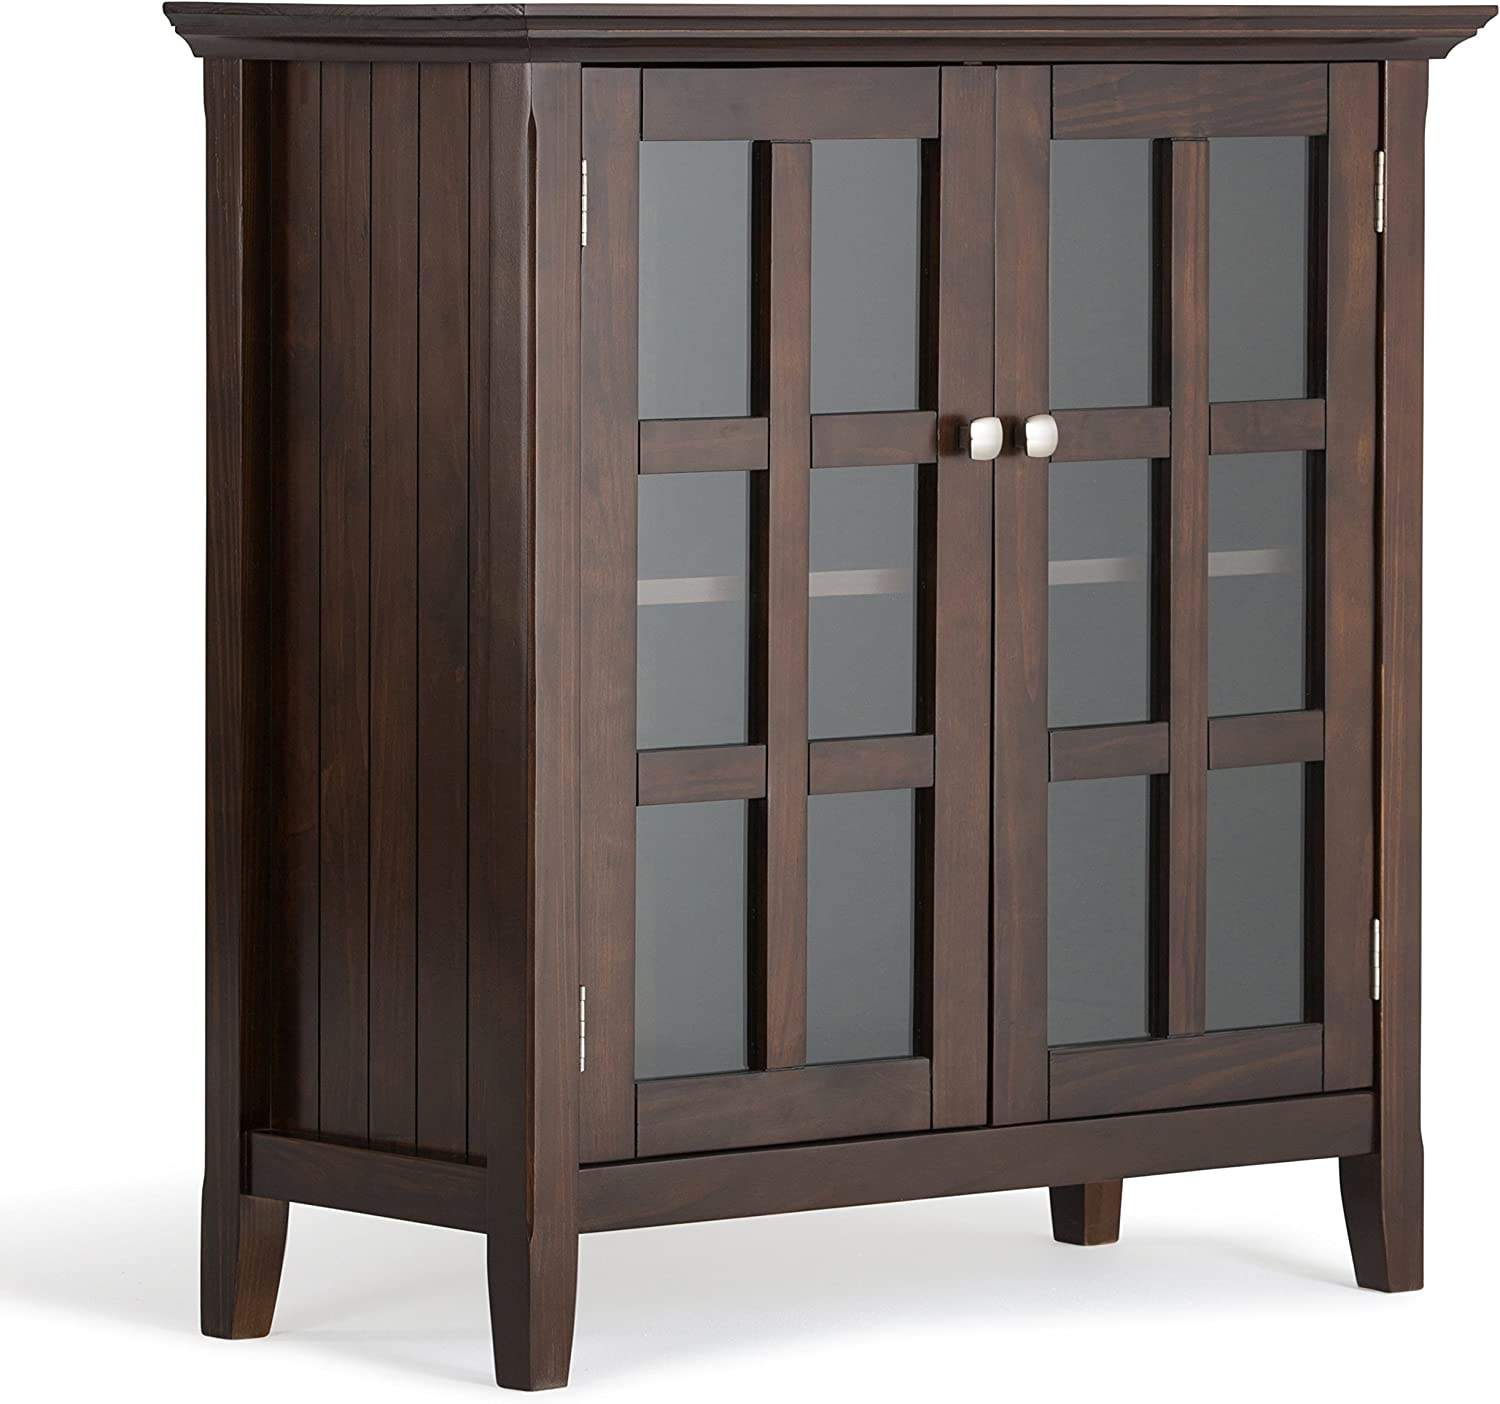 SIMPLIHOME Tucson Mall Acadian SOLID WOOD 35 inch Storage Wide Ca Rustic Low Free shipping on posting reviews